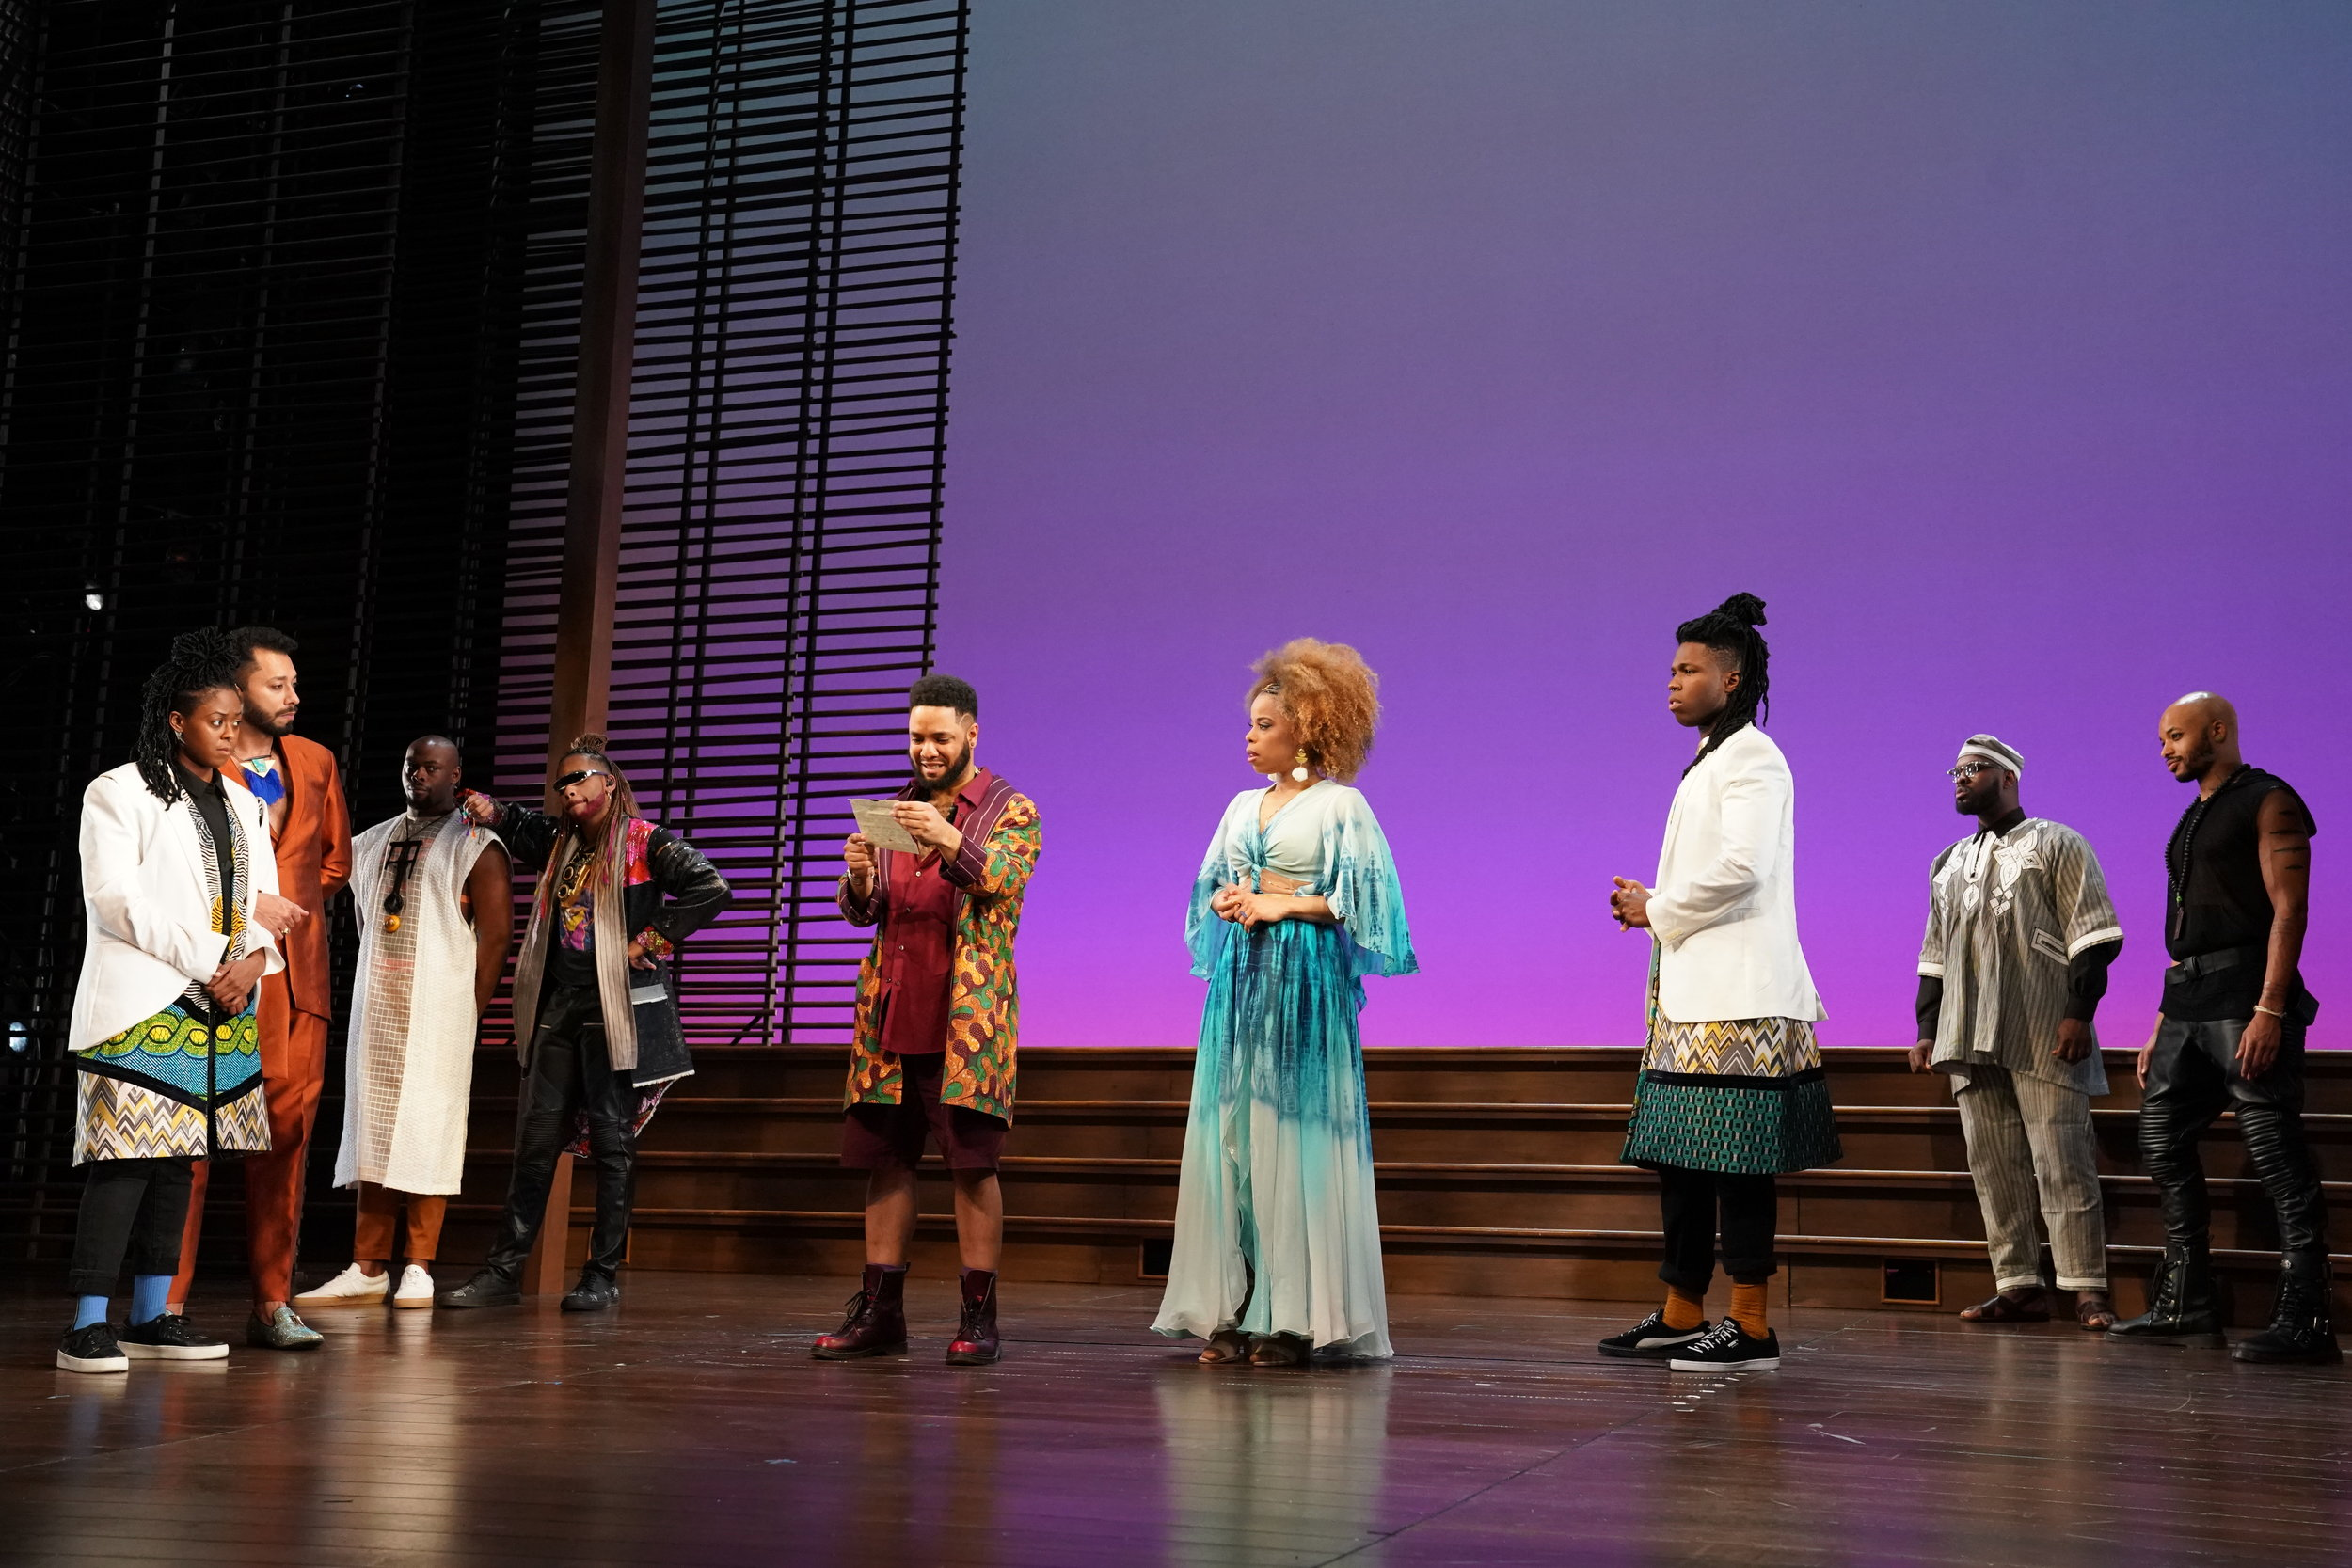 Moses Ingram  as Viola,  William DeMerritt  as Orsino,   Wesley T. Jones  as Orsino Lord,  Erron Crawford  as Feste,  Raffeal A. Sears  as Fabian,  Tiffany Denise Hobbs  as Olivia,  Jakeem Dante Powell  as Sebastian,  Stephon Pettway  as The Priest, and  Manu Kumasi  as Antonio.